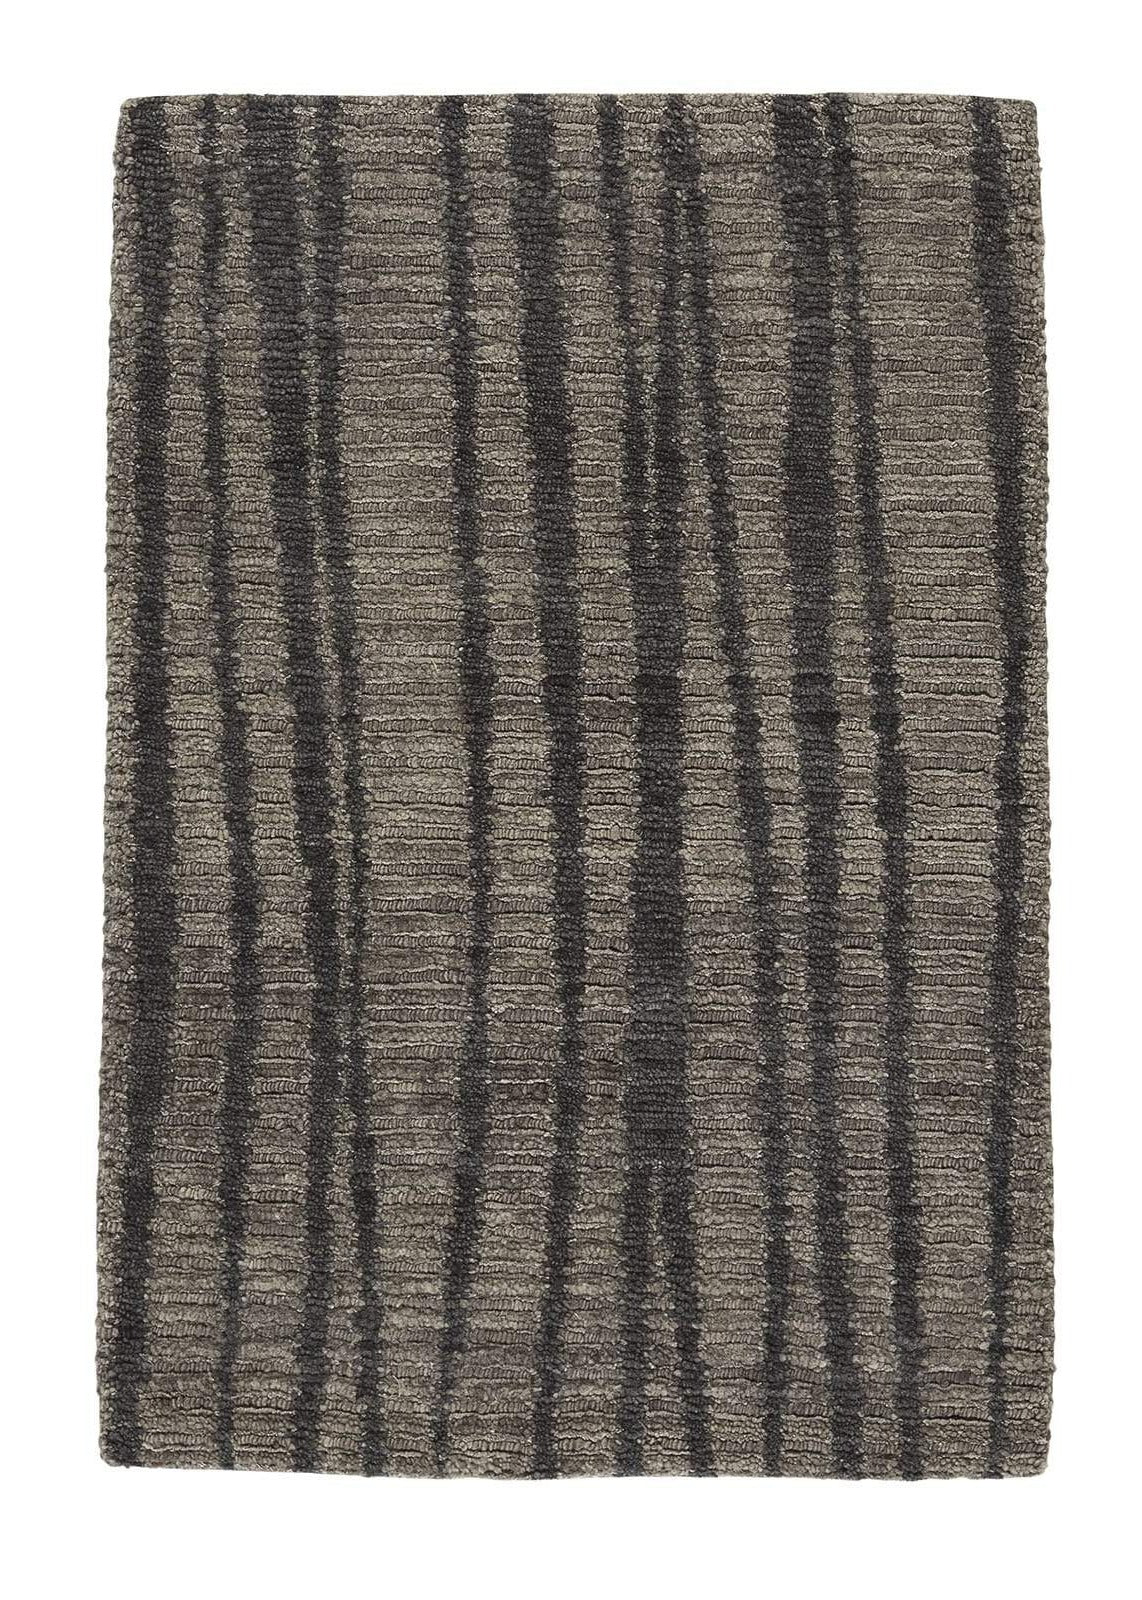 Rays II Bark, a hand knotted rug designed by Tufenkian Artisan Carpets.